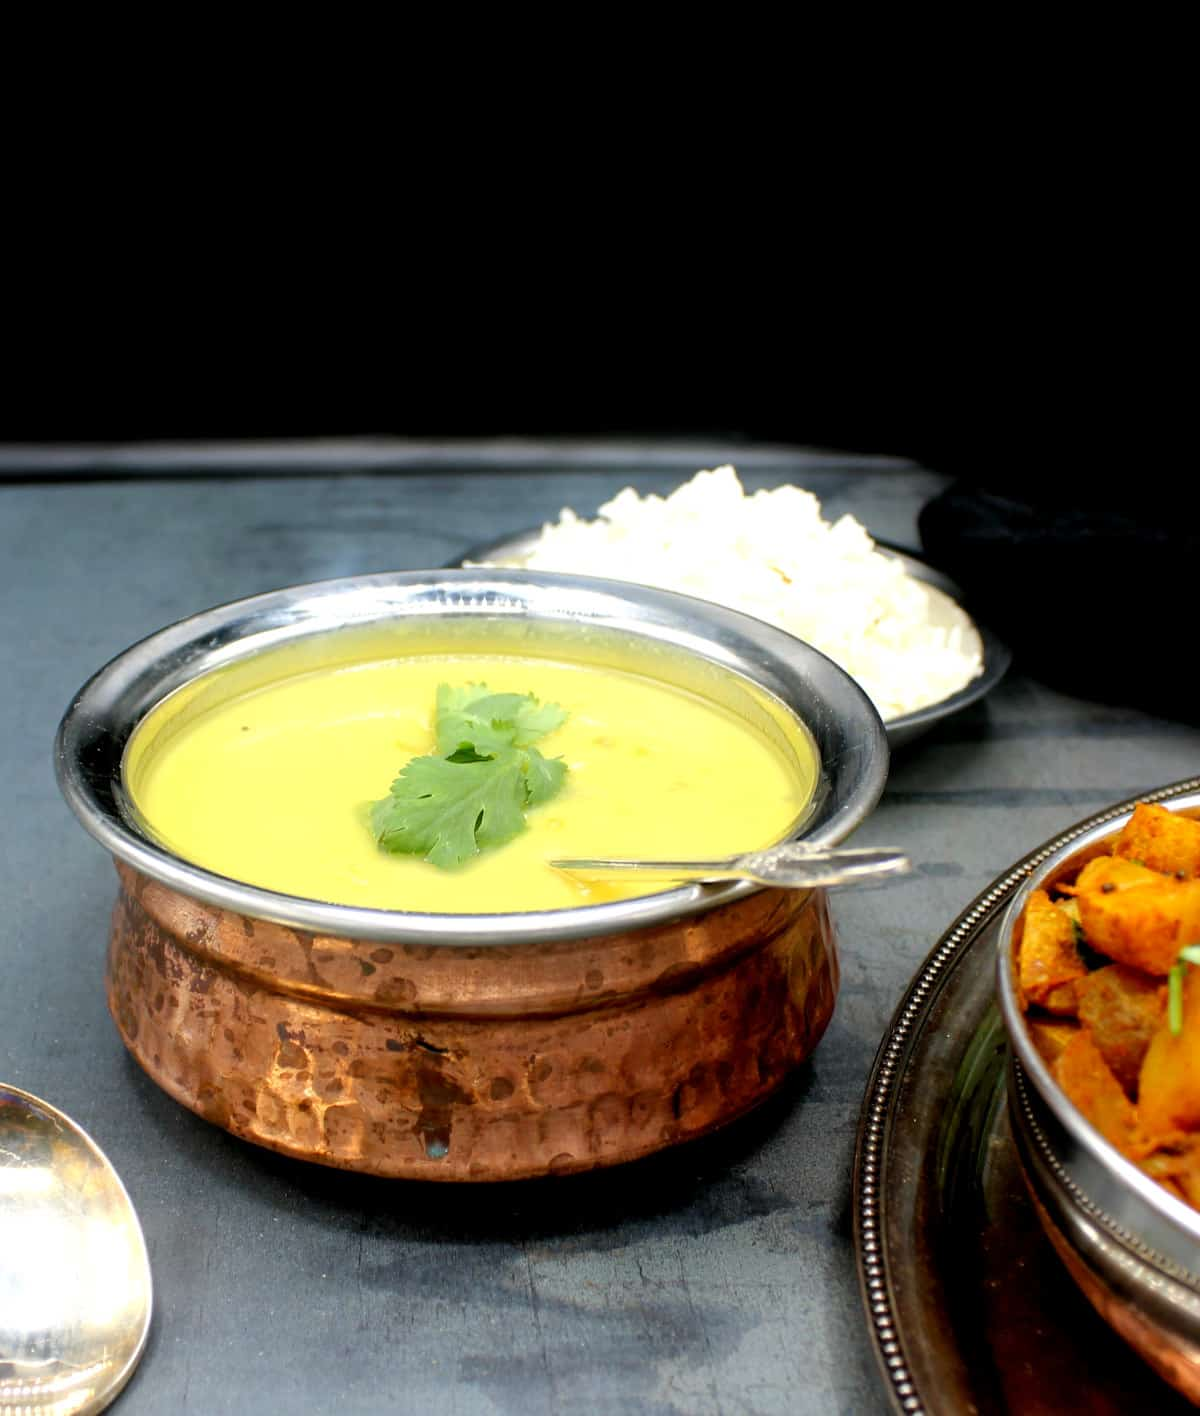 Creamy moong dal in a copper and steel serving bowl with a silver spoon and rice and Bombay potato sabzi on the side.